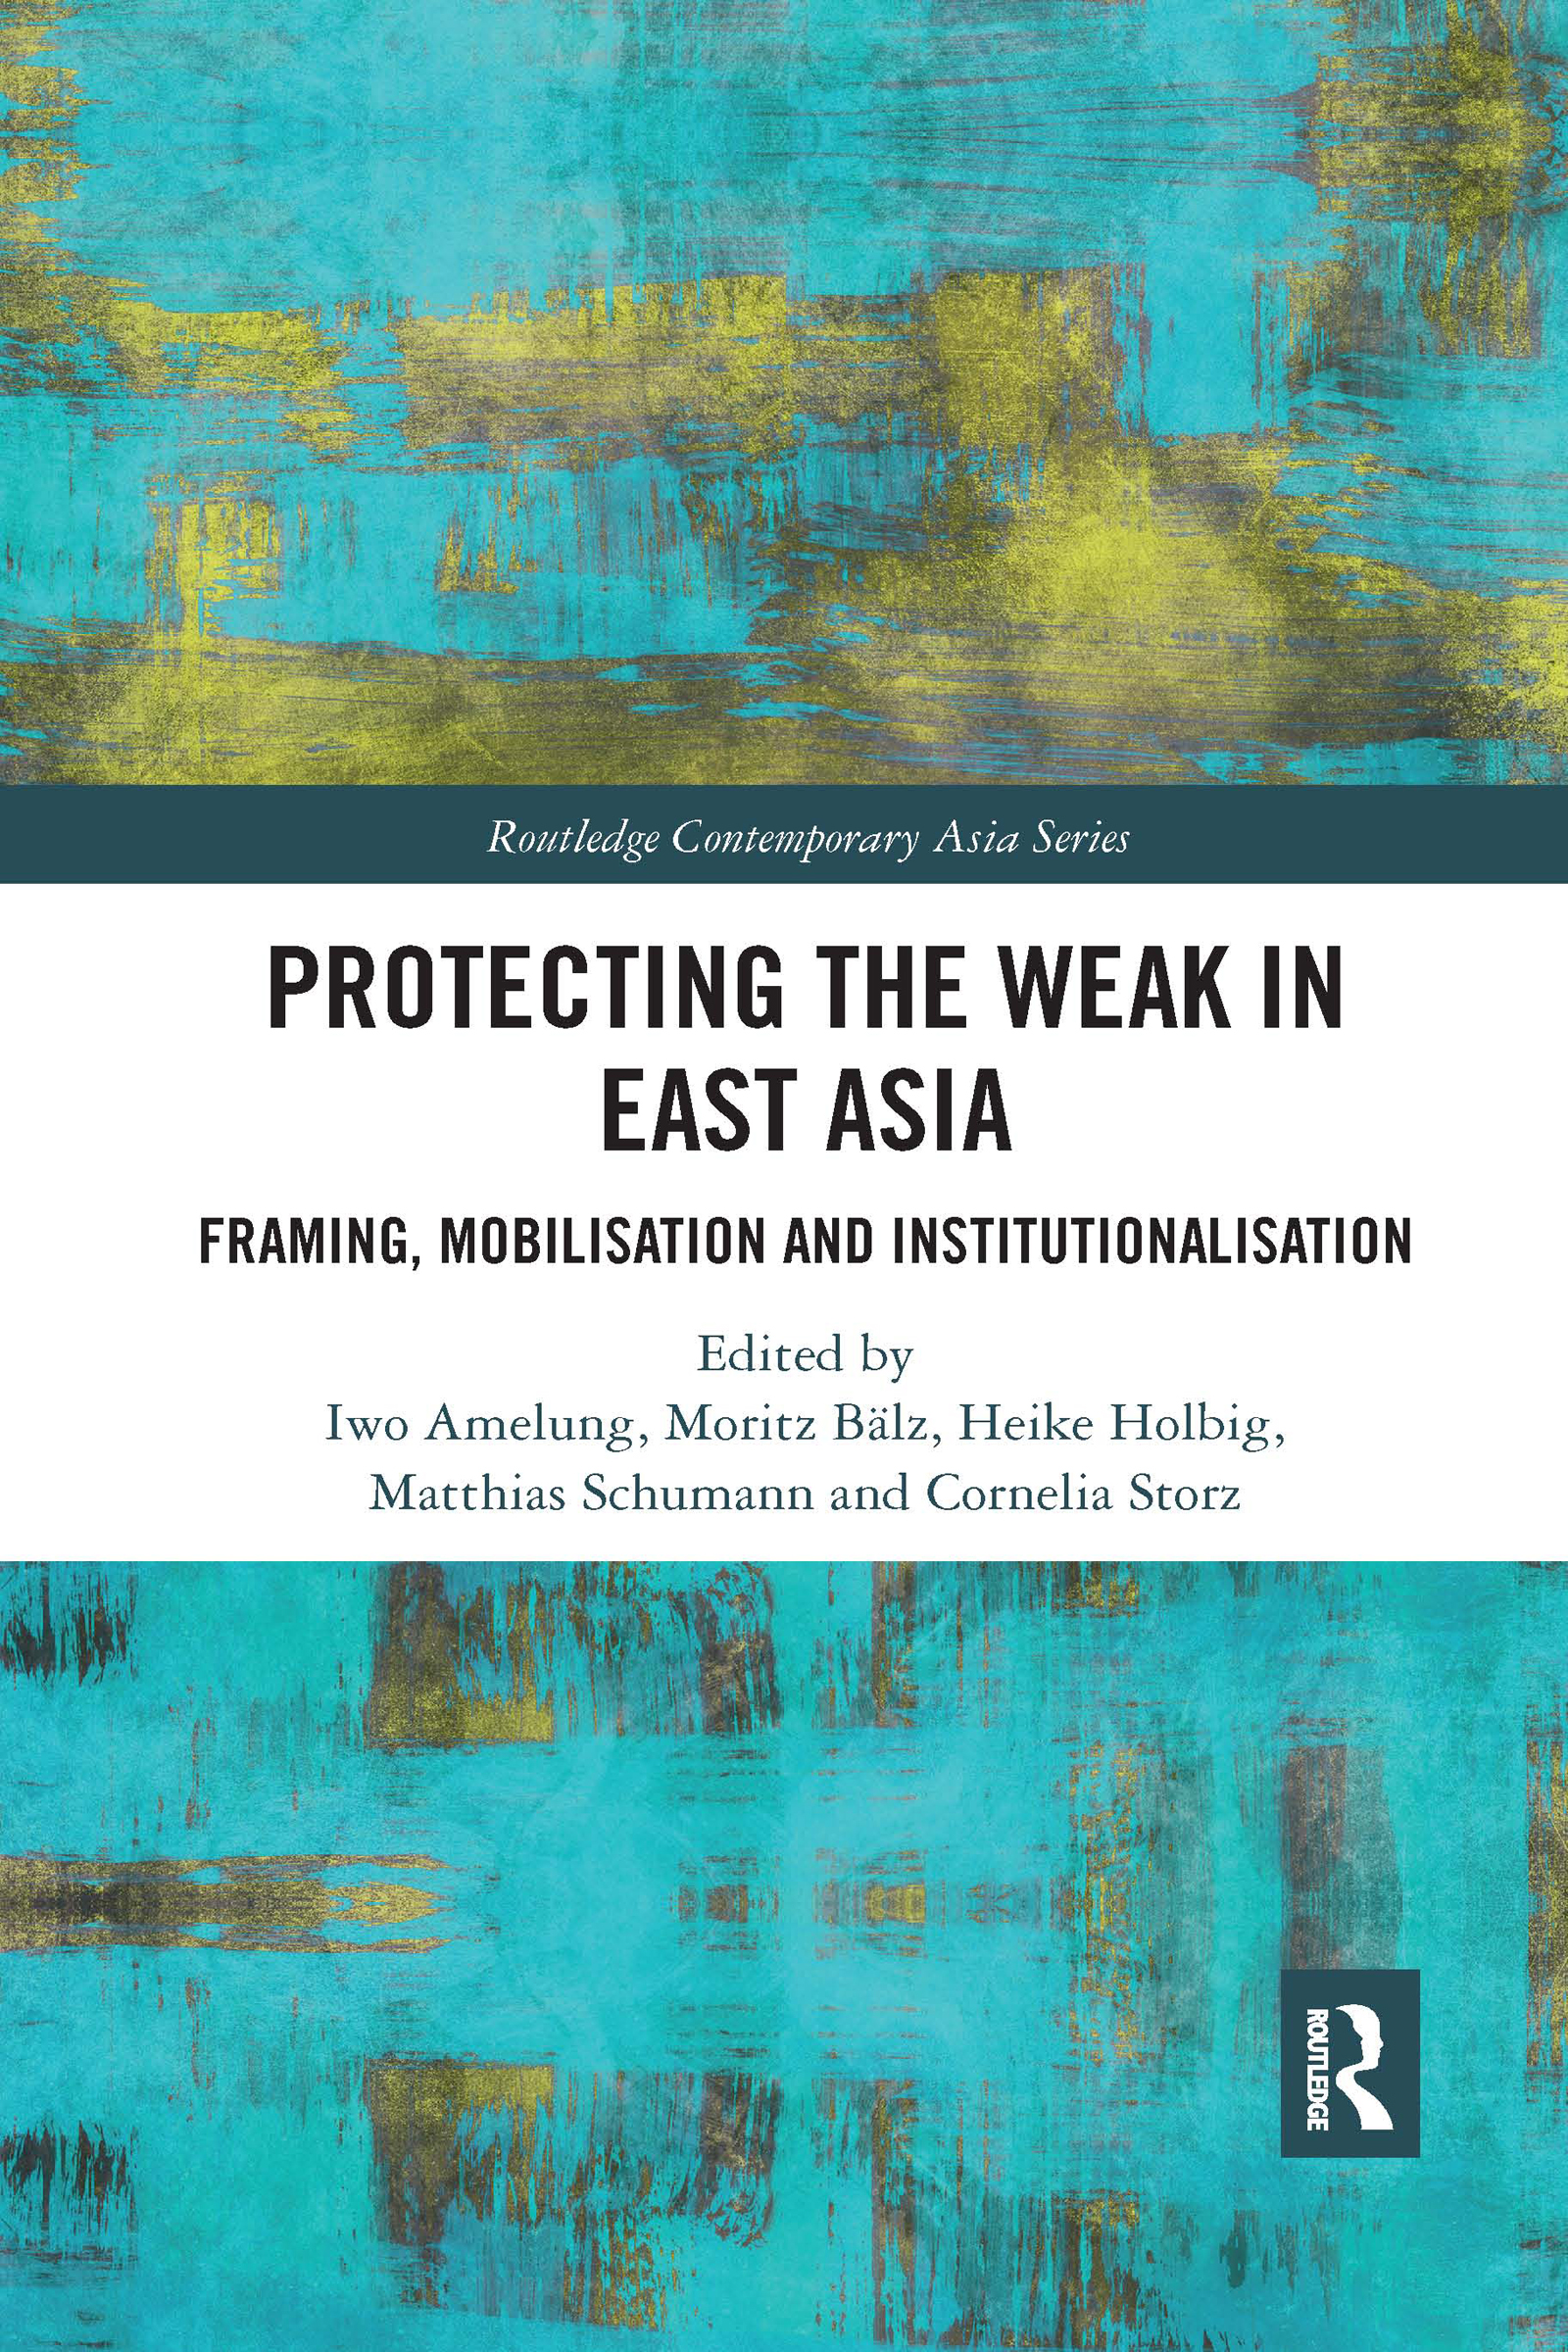 Protecting the Weak in East Asia